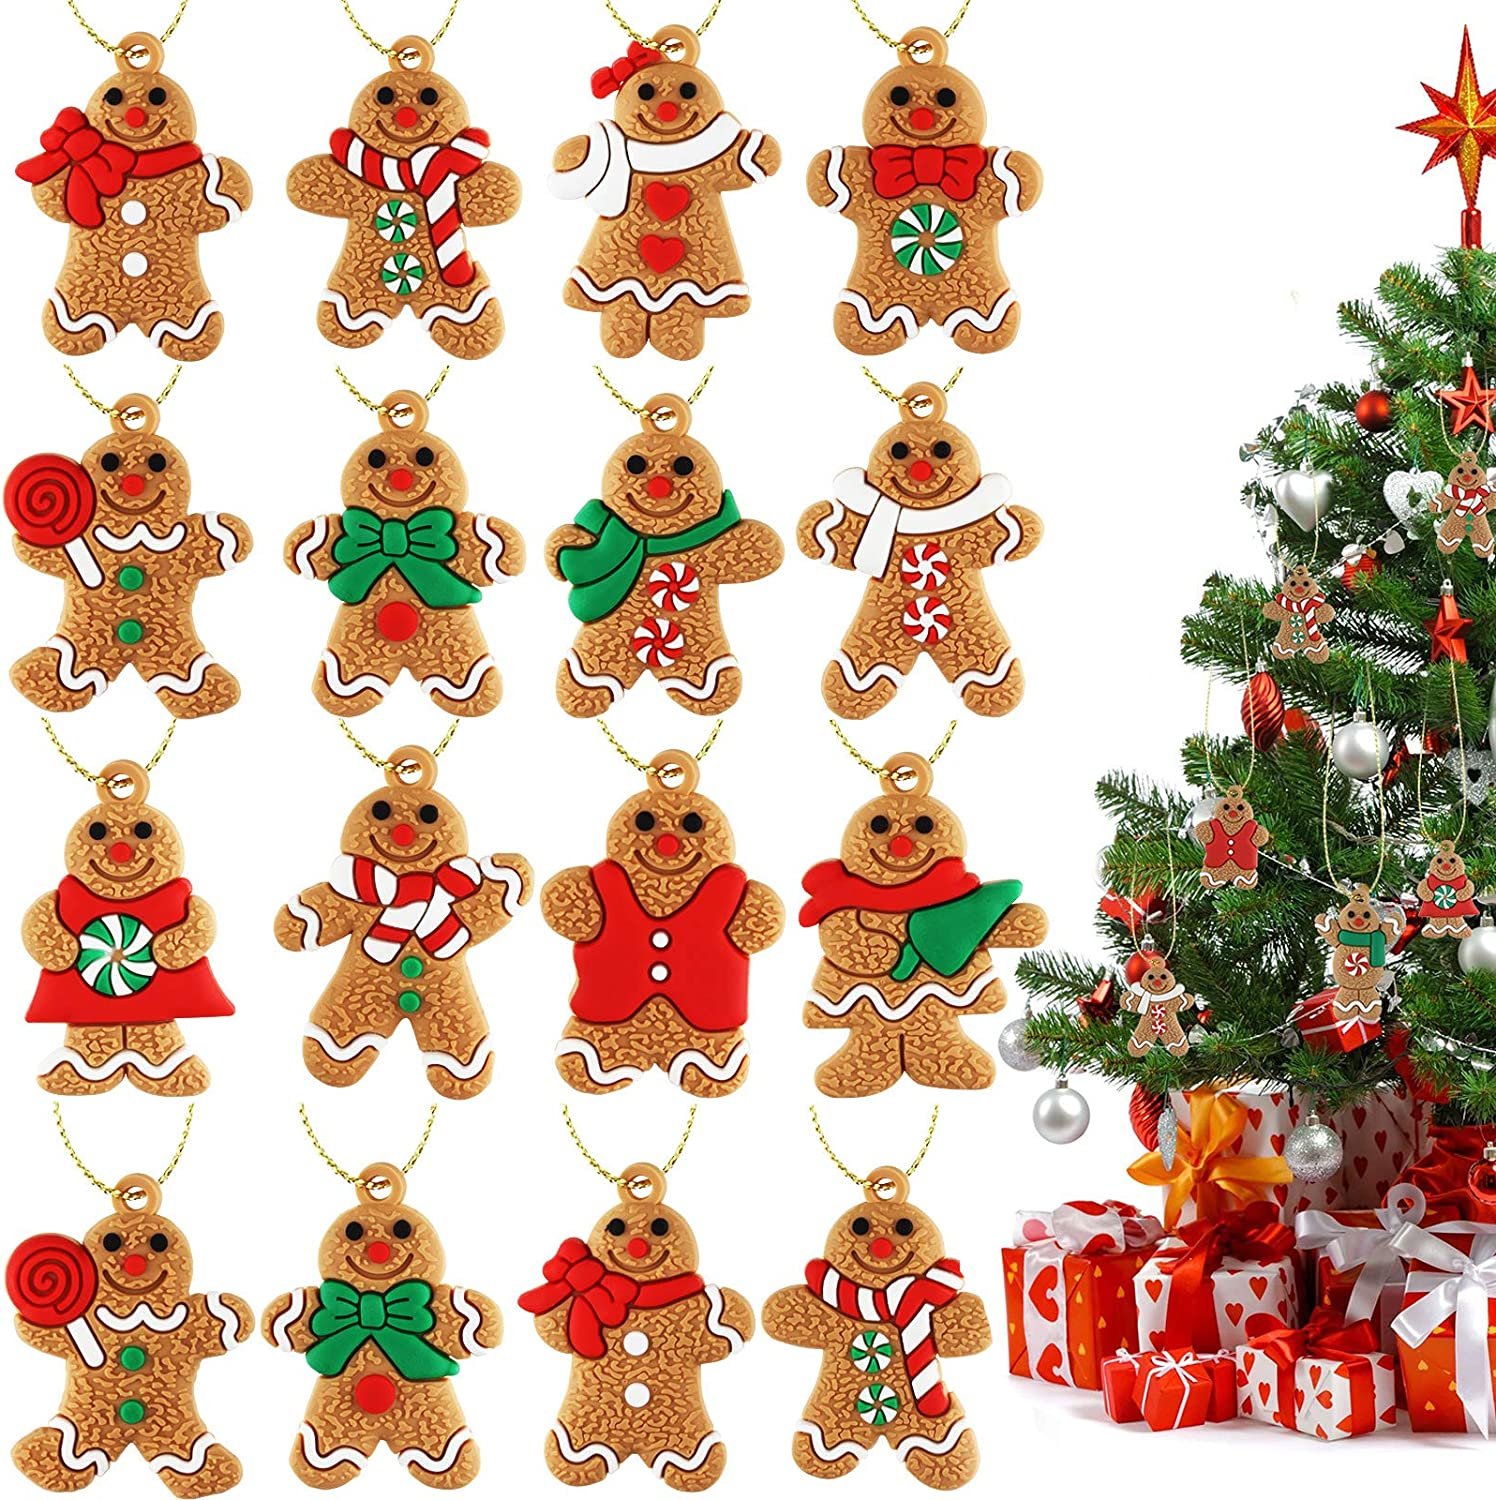 32 Pieces Traditional Gingerbread Man Ornaments Gingerman Doll Hanging Charms Assorted Clay Figurine Shape for Christmas Tree Festival Decoration